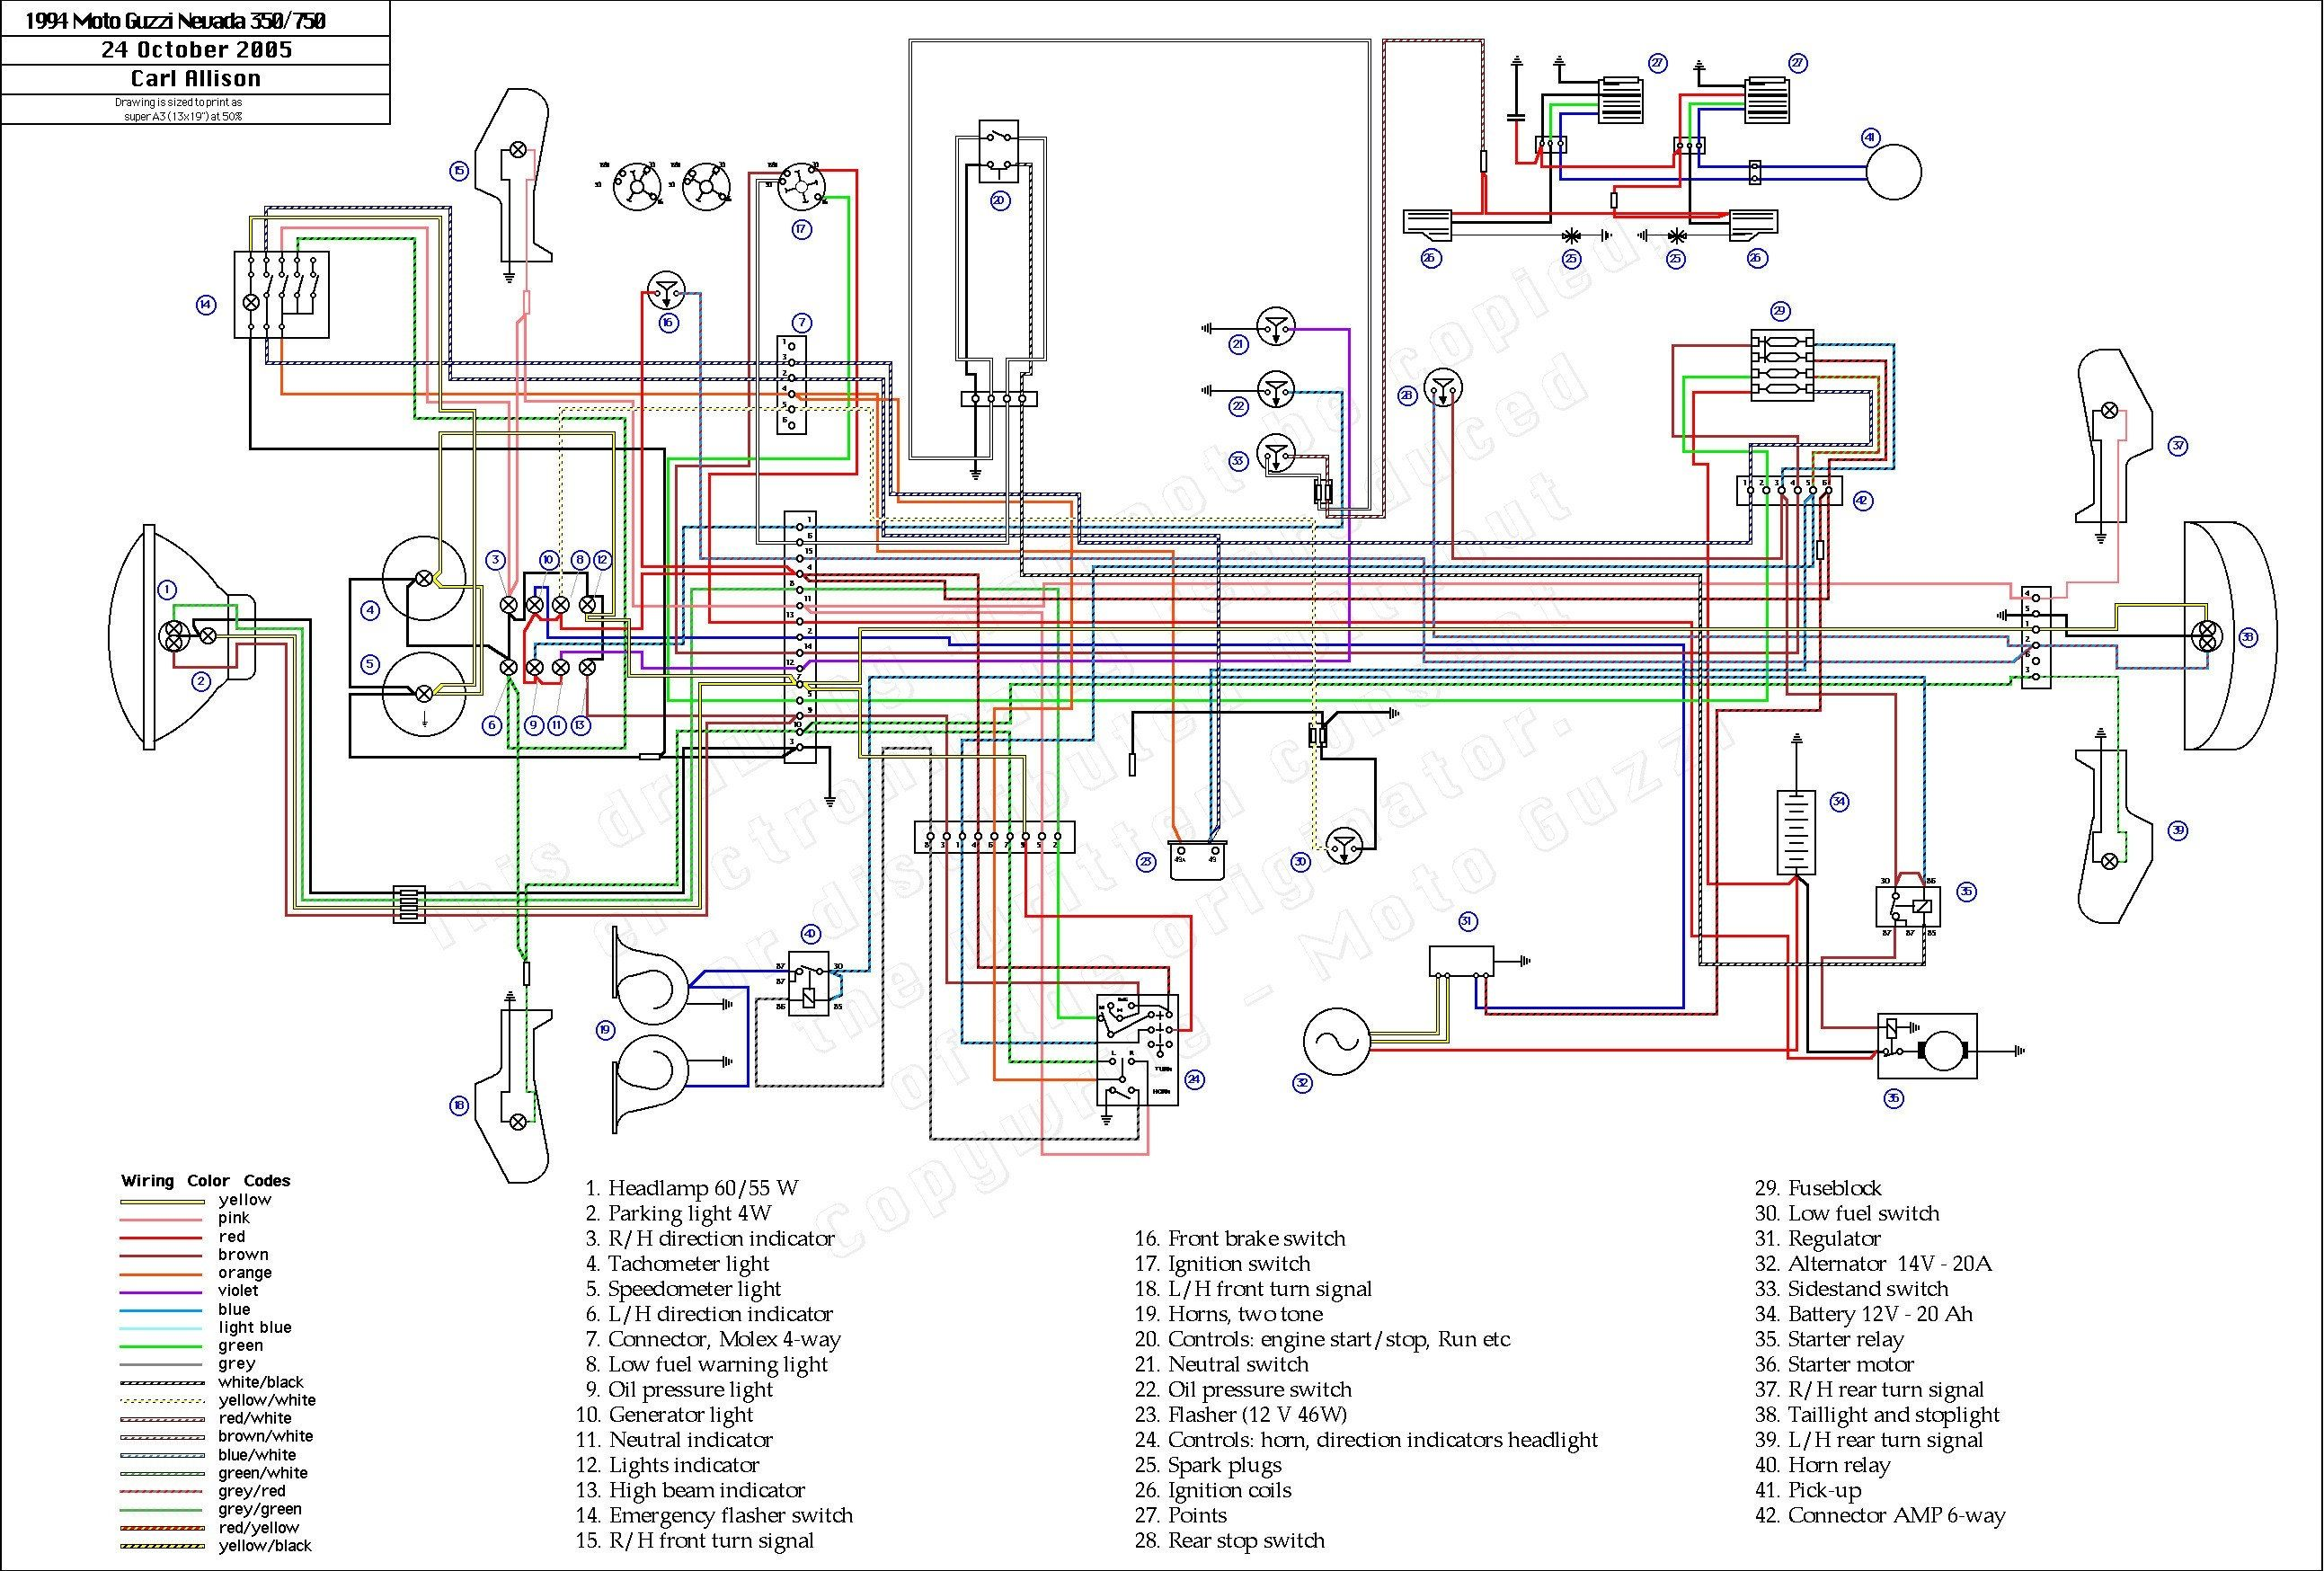 yamaha banshee wiring harness diagram logic of 8 to 1 line multiplexer wire harnes 2001 library for you rh 3 6 carrera rennwelt de 96